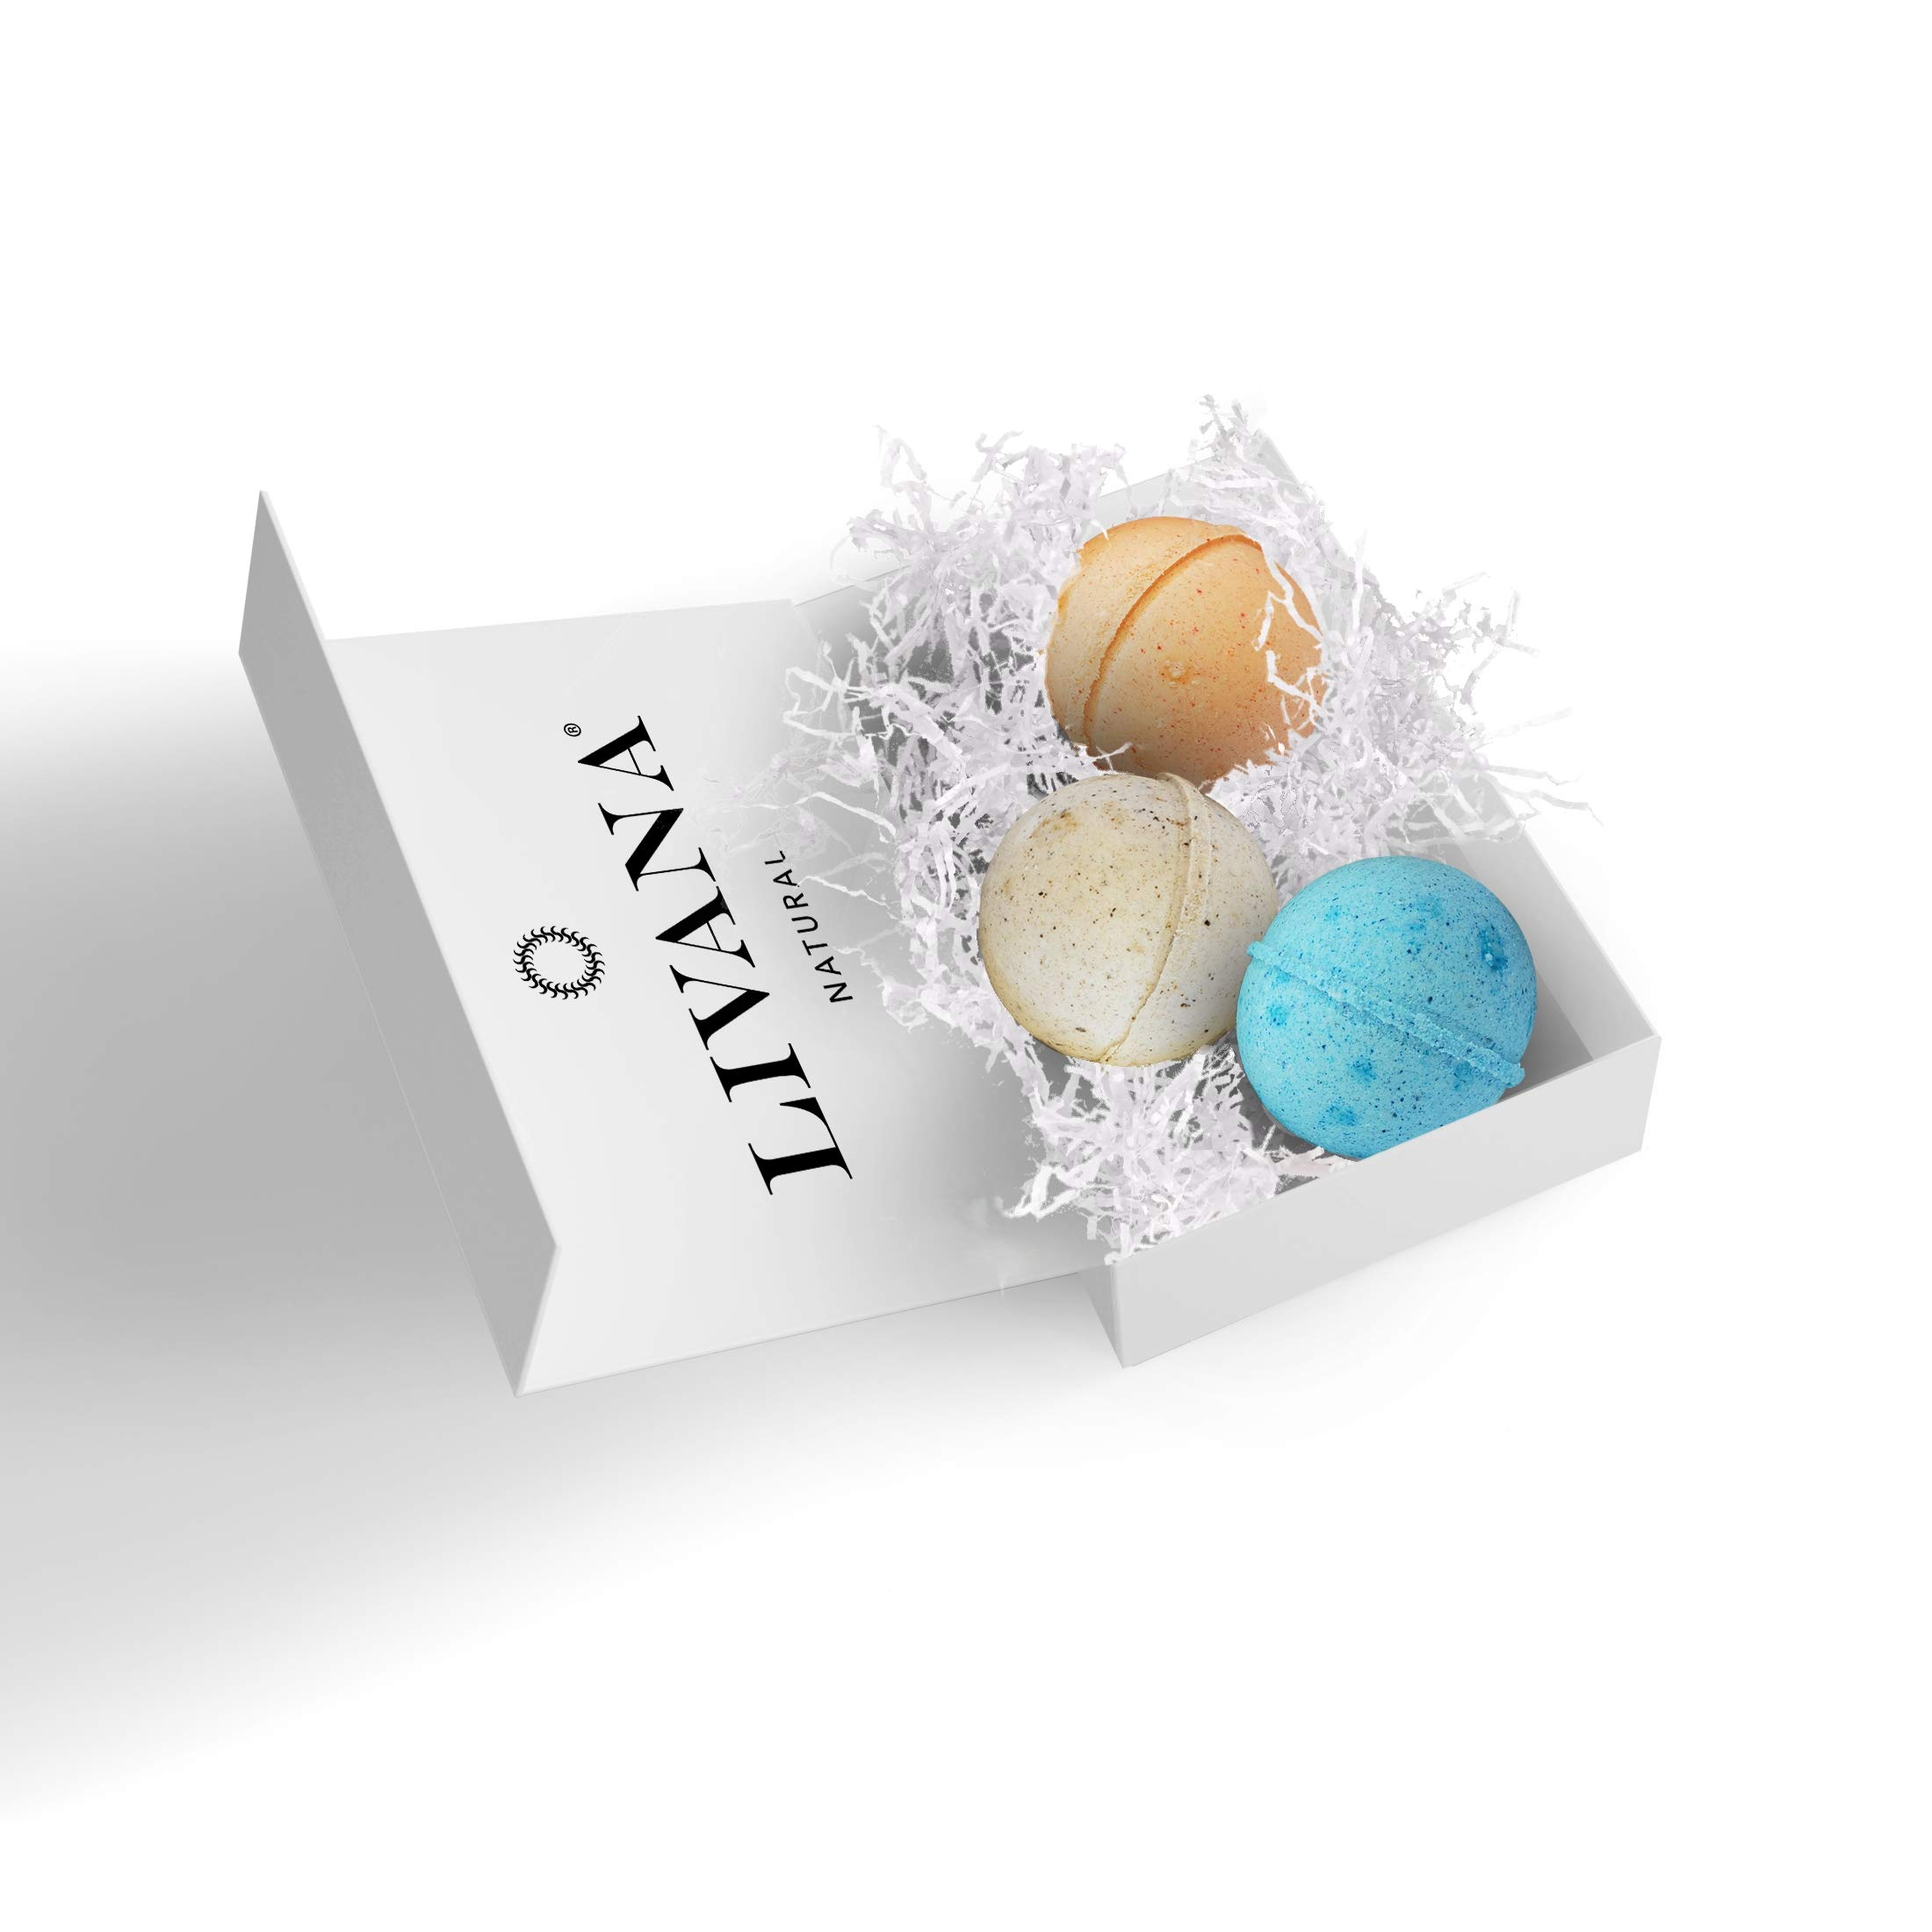 Morning, Noon & Night Bath Bombs Gift Set made in the USA, Moisturizes, Perfect for Bubble & Spa Bath. Handmade Birthday, Gift ideas For Her/Him, mom, wife, girlfriend